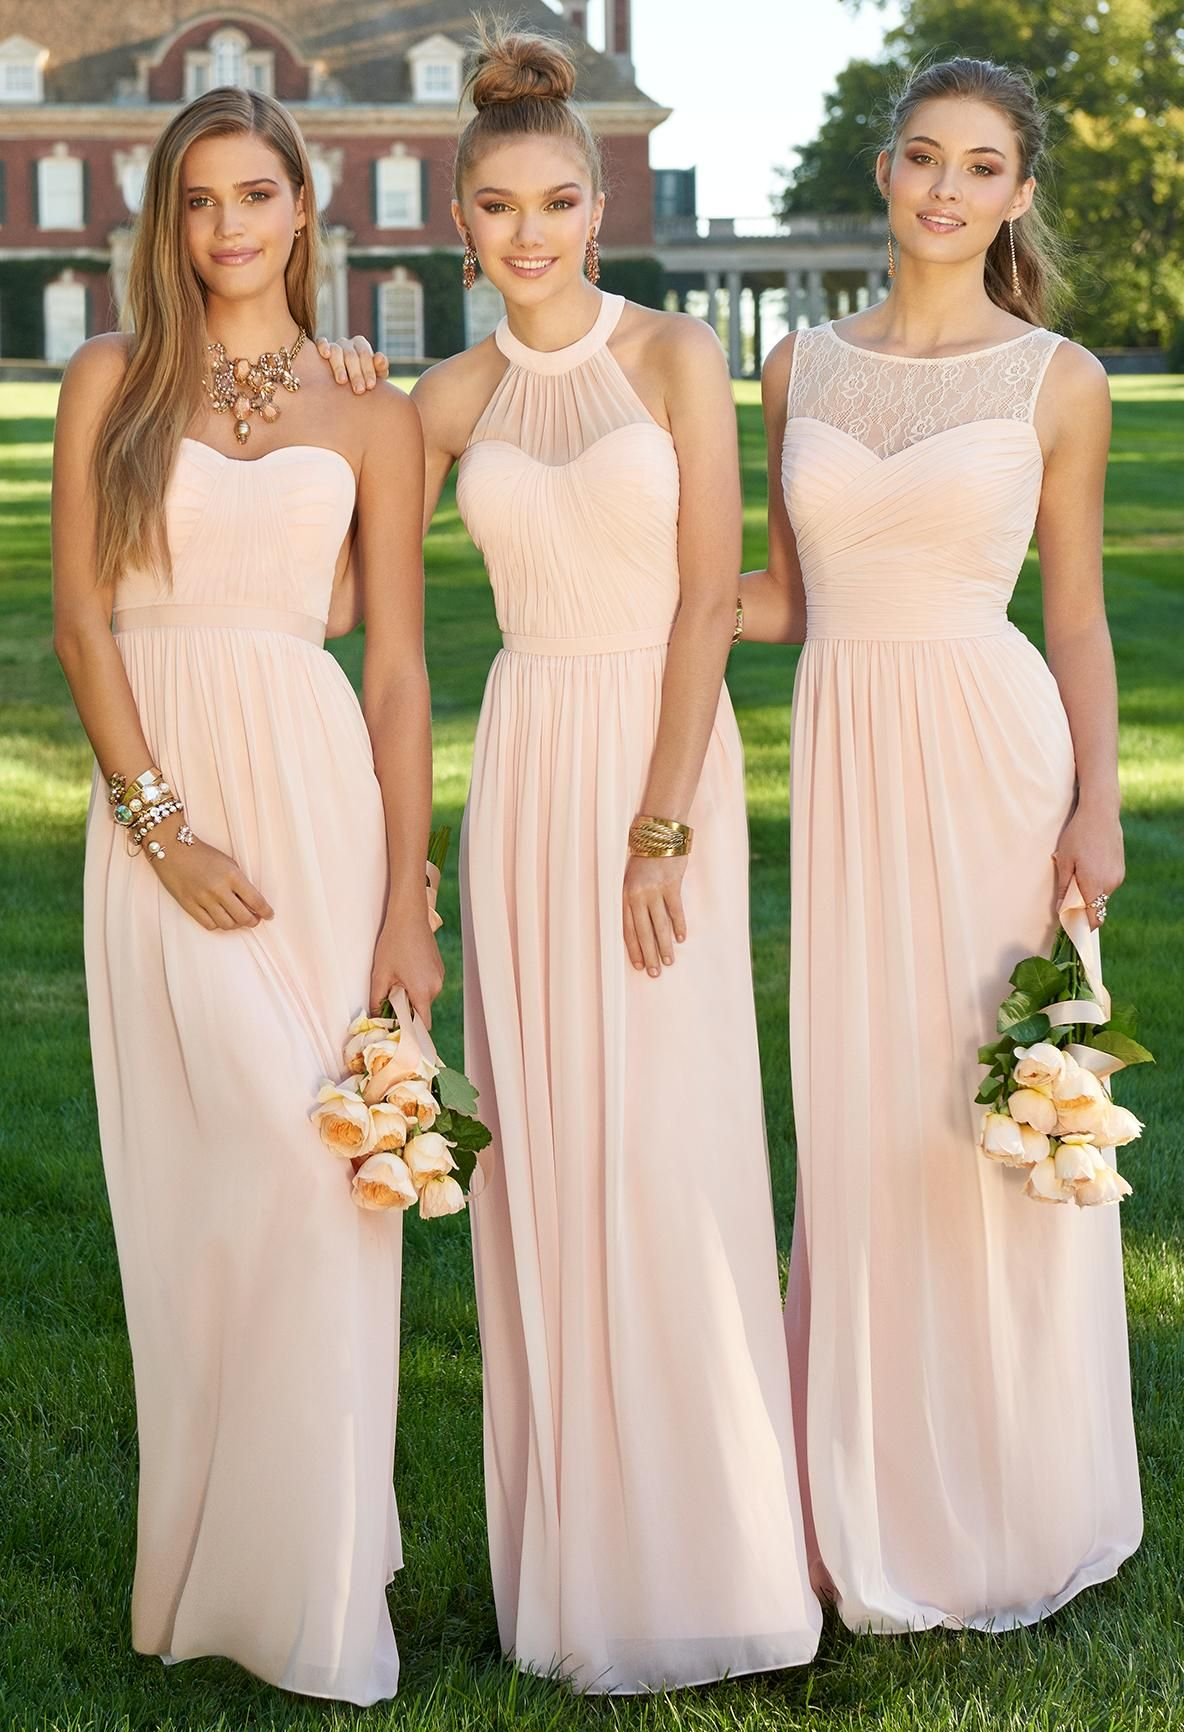 Maid of Honor Dresses par el matriiiii más peach dress bridesmaid, wedding dresses for bridesmaids,  different bridesmaid dresses TJYTVUF